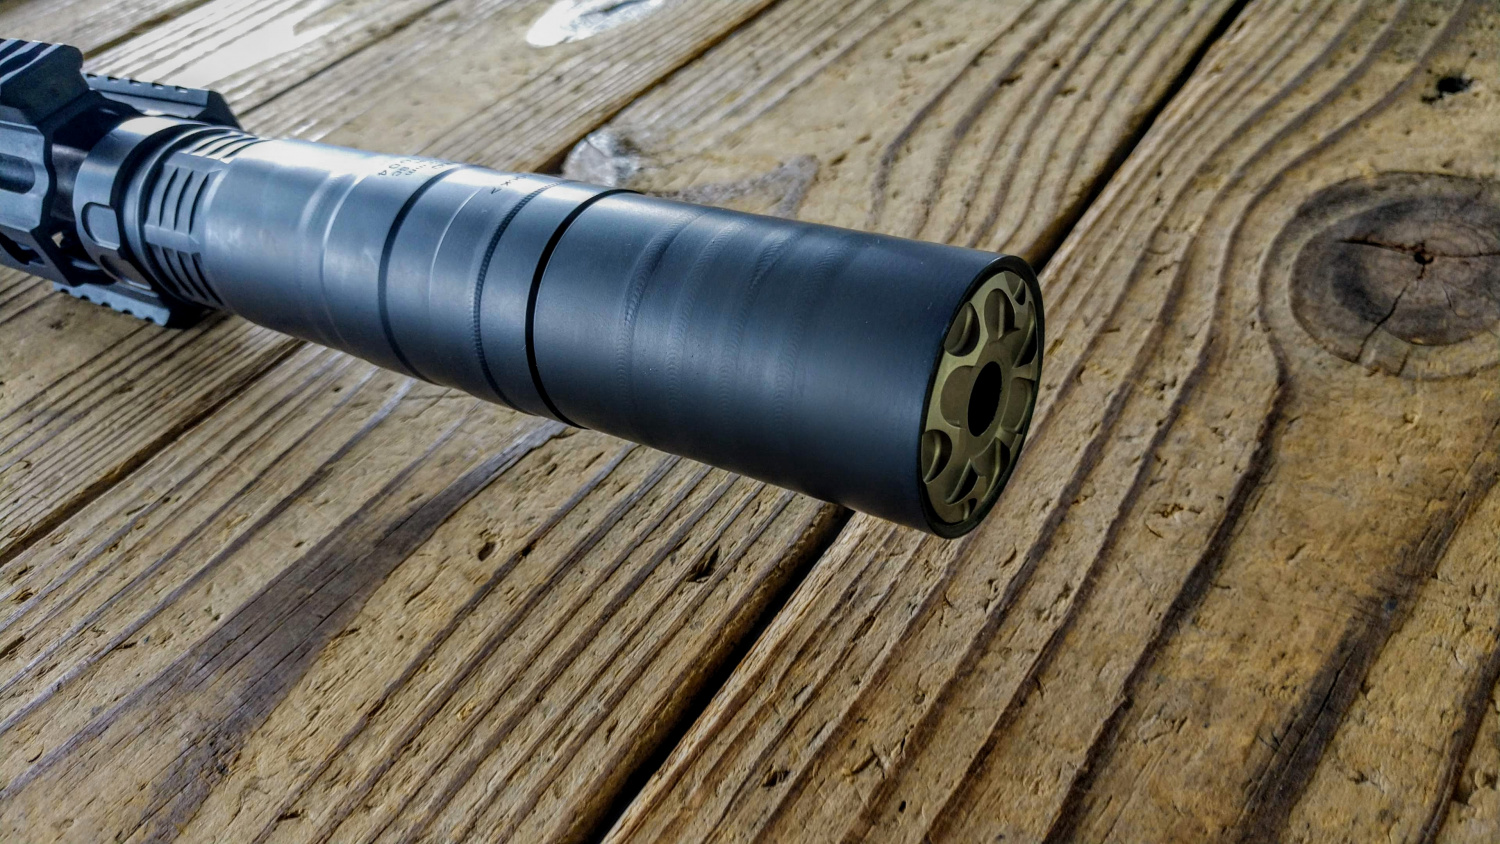 NRA 2019] Rugged Suppressors Radiant 762 from the ASA